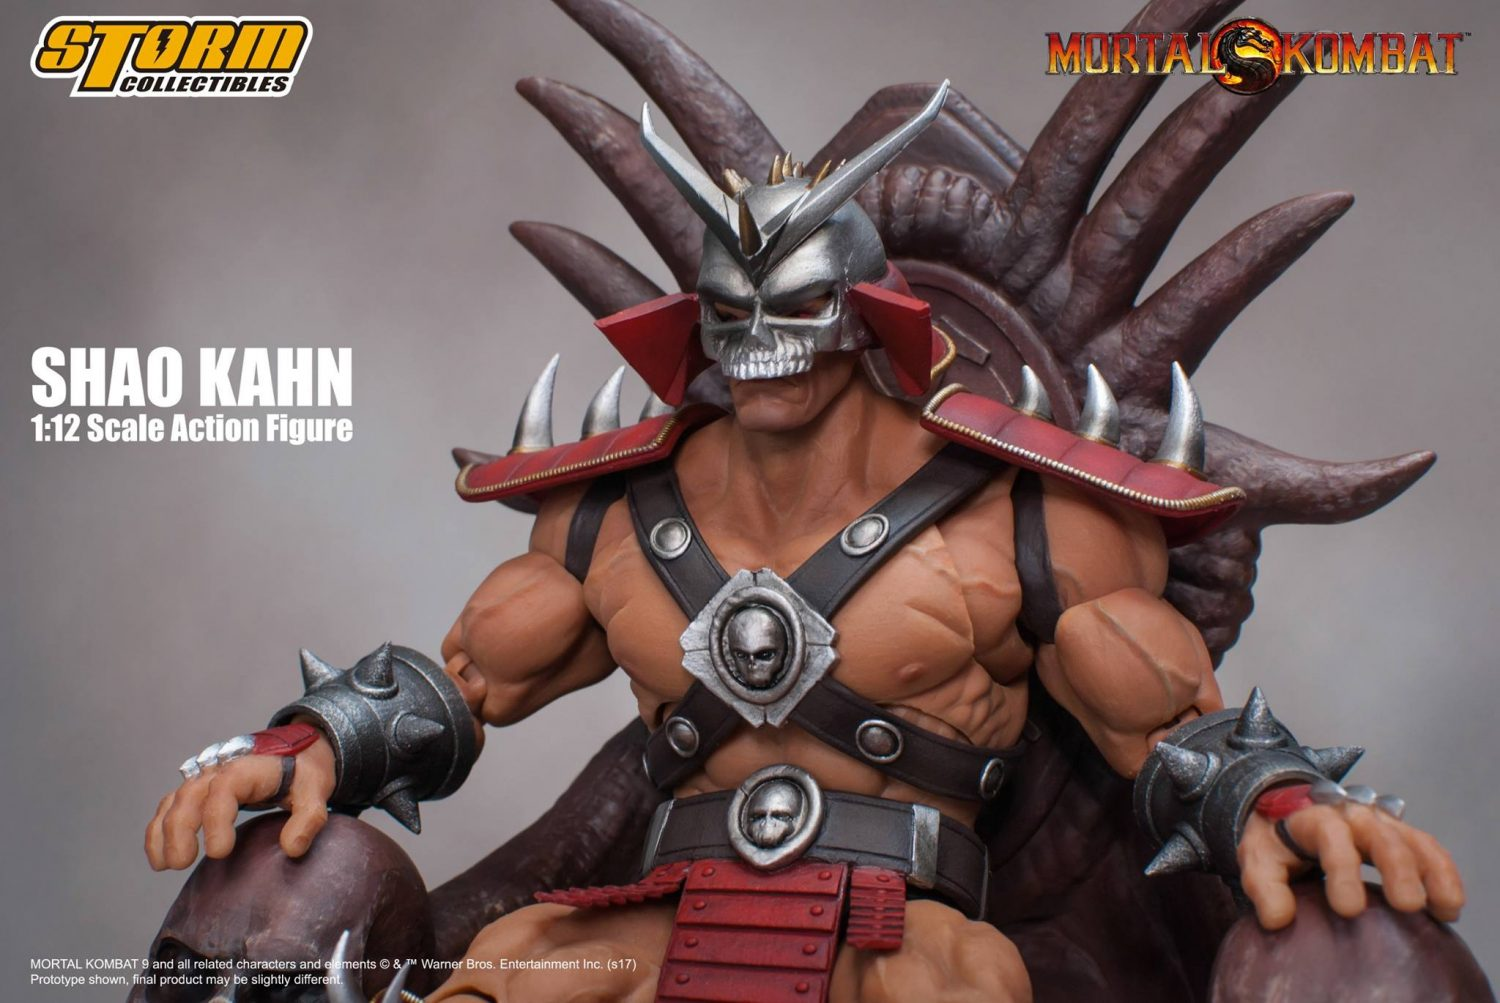 Storm Collectibles Mortal Kombat Shao Kahn 1/12th Scale Figure